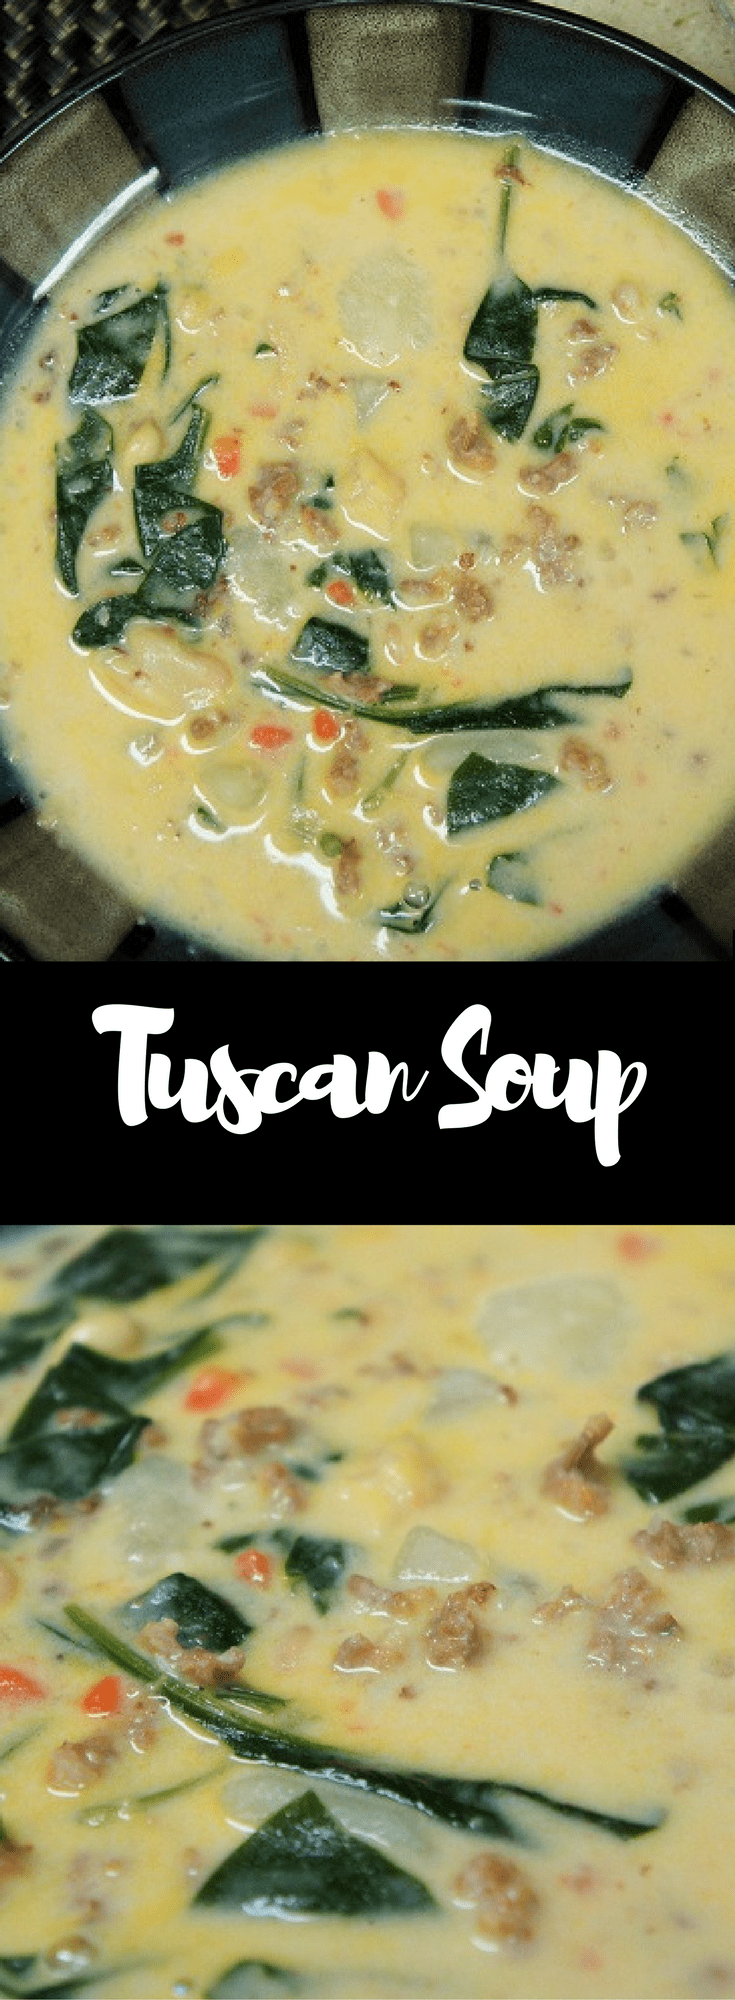 This Tuscan-style soup is hearty and delicious. It has a ton of flavor, and a spicy kick thanks to the Italian sausage. It's also loaded with good-for-you ingredients like garlic, onions, spinach and potatoes. This is one soup that won't leave you hungry. #tuscansoup #soup #italianfood #italiansausage